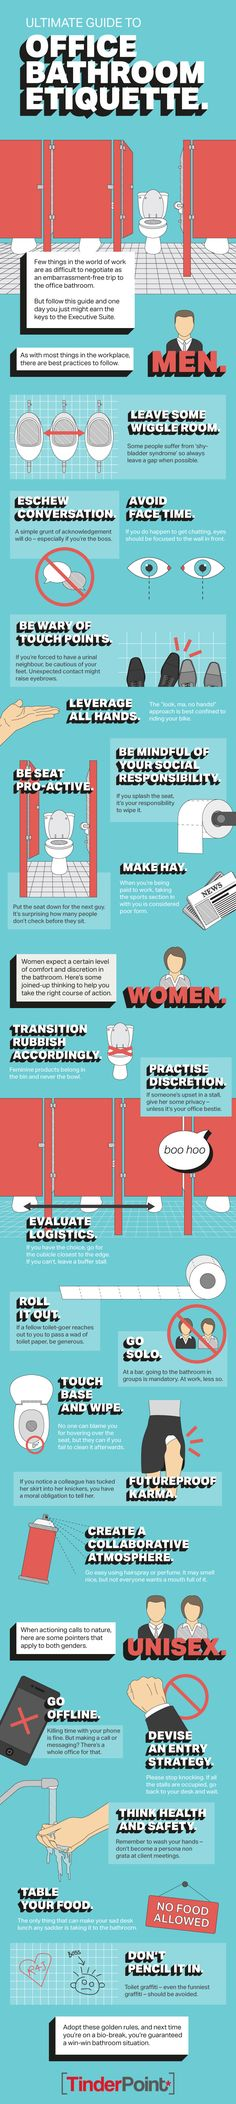 The Ultimate Guide to Office Bathroom Etiquette #infographic #Office #Bathroom #infografía